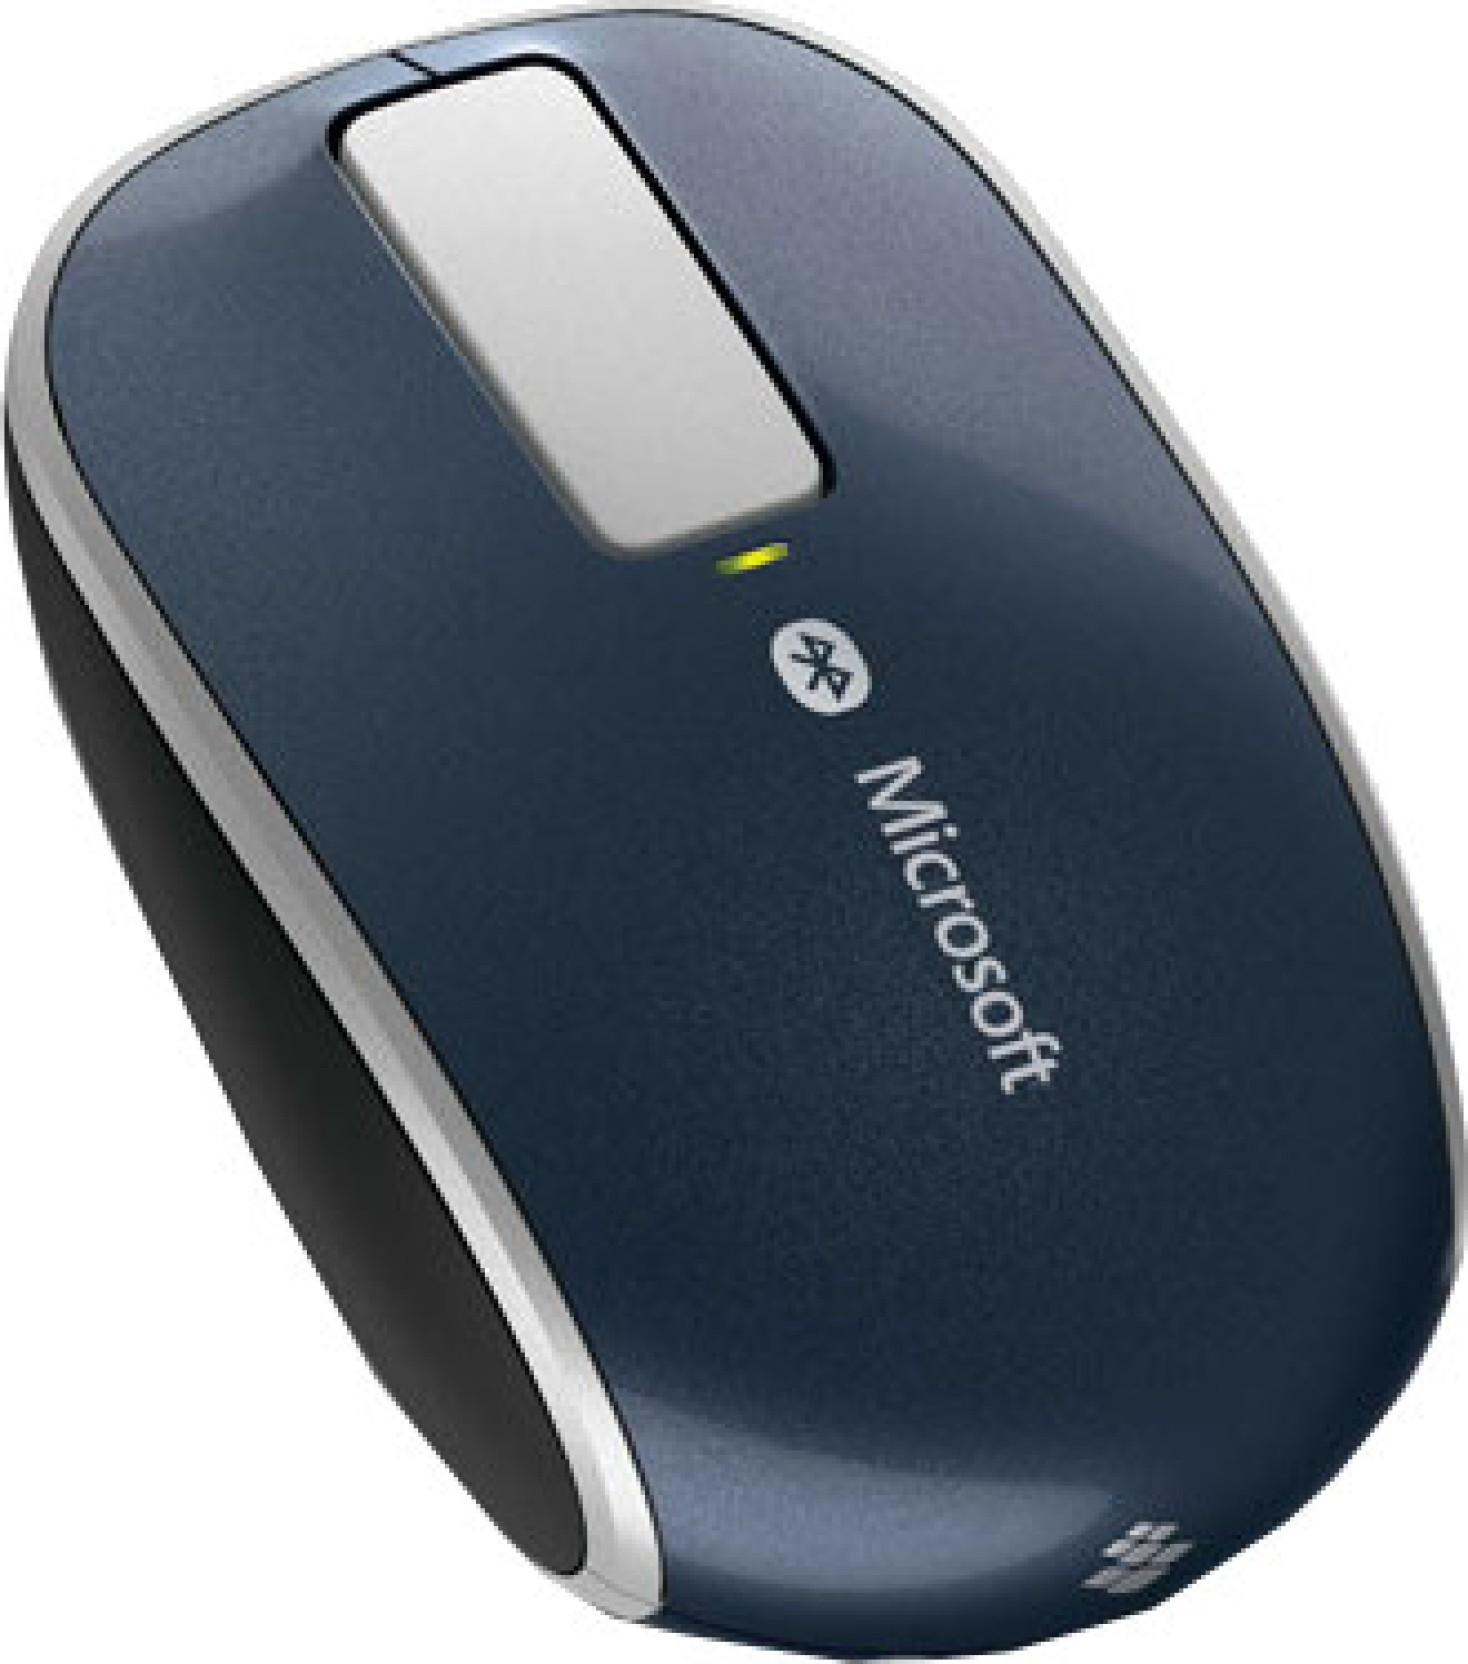 Microsoft Sculpt Touch Wireless Mouse Comfort Share